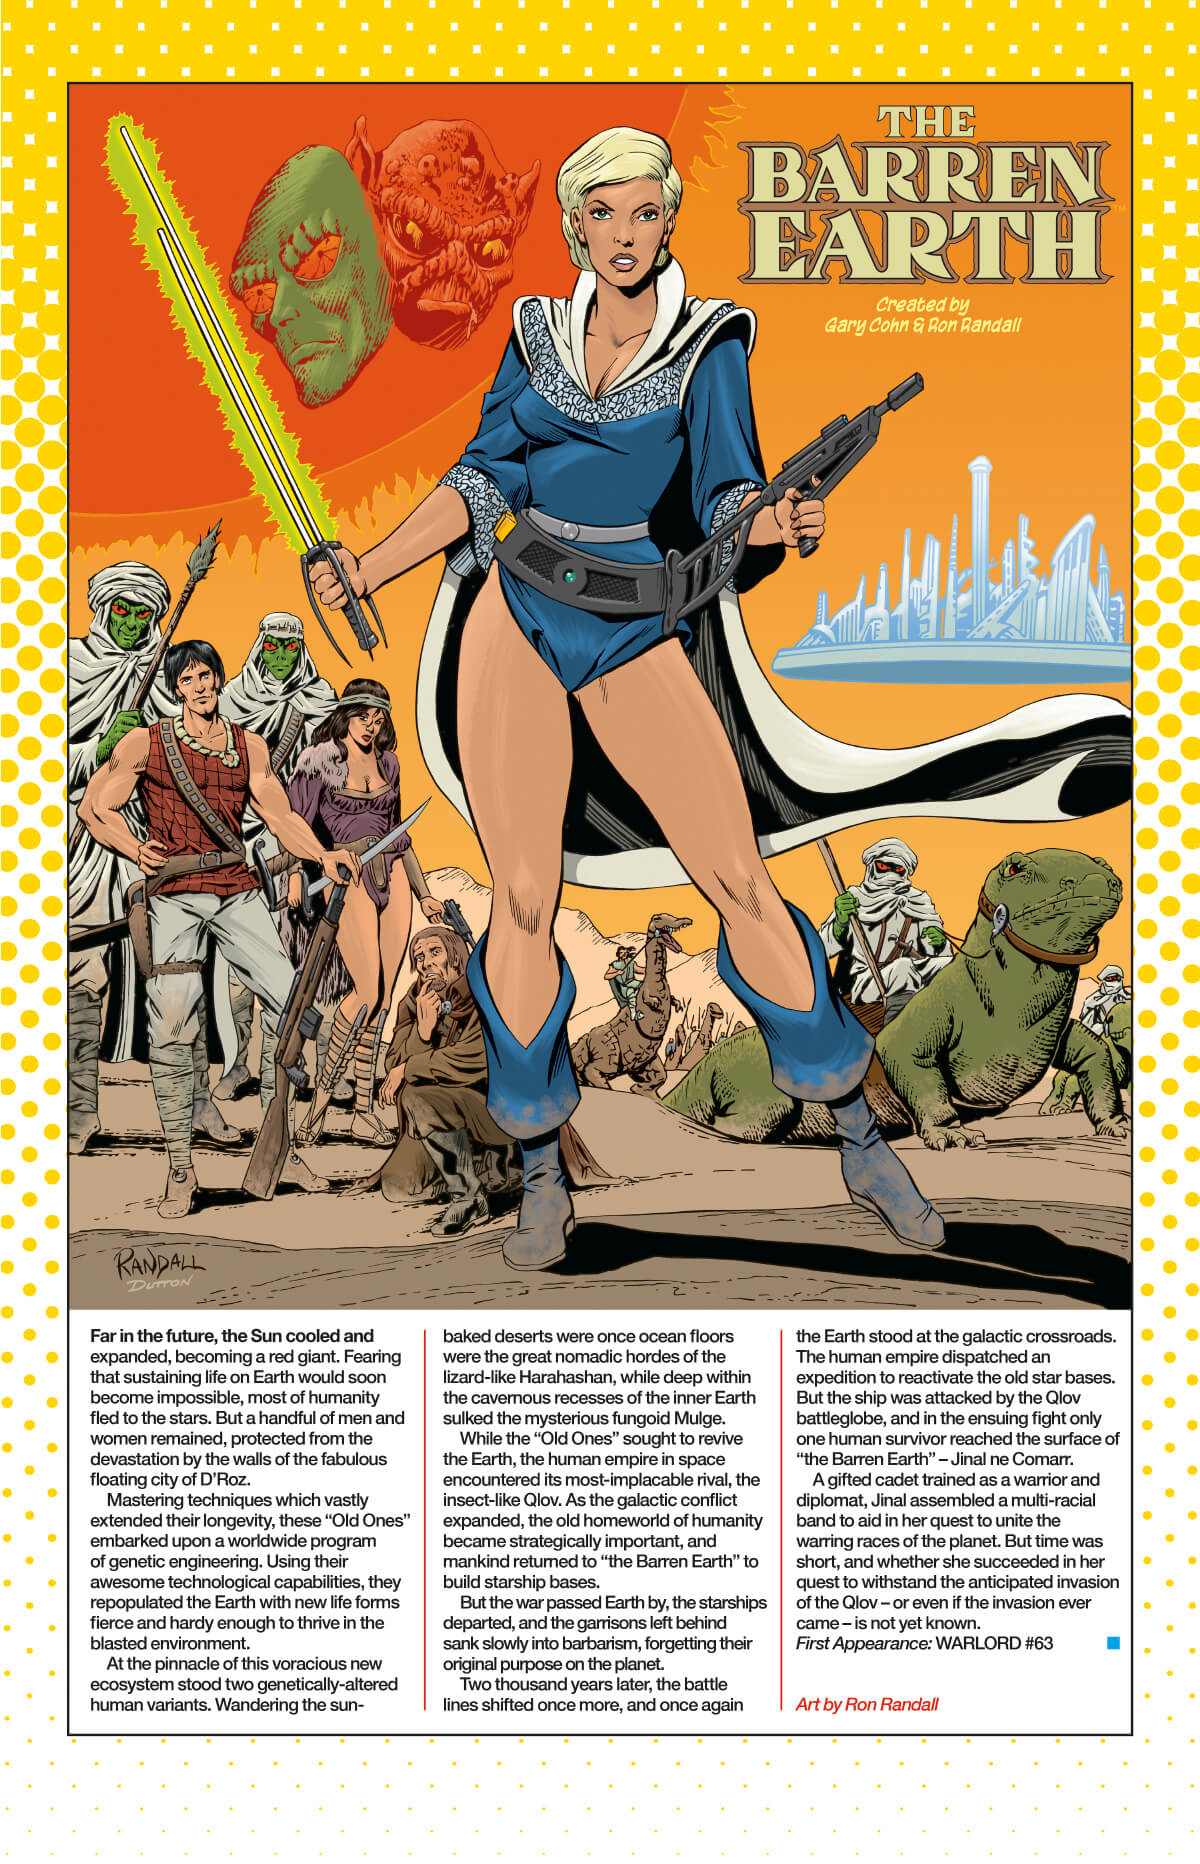 Comic book design and production by Scott Dutton